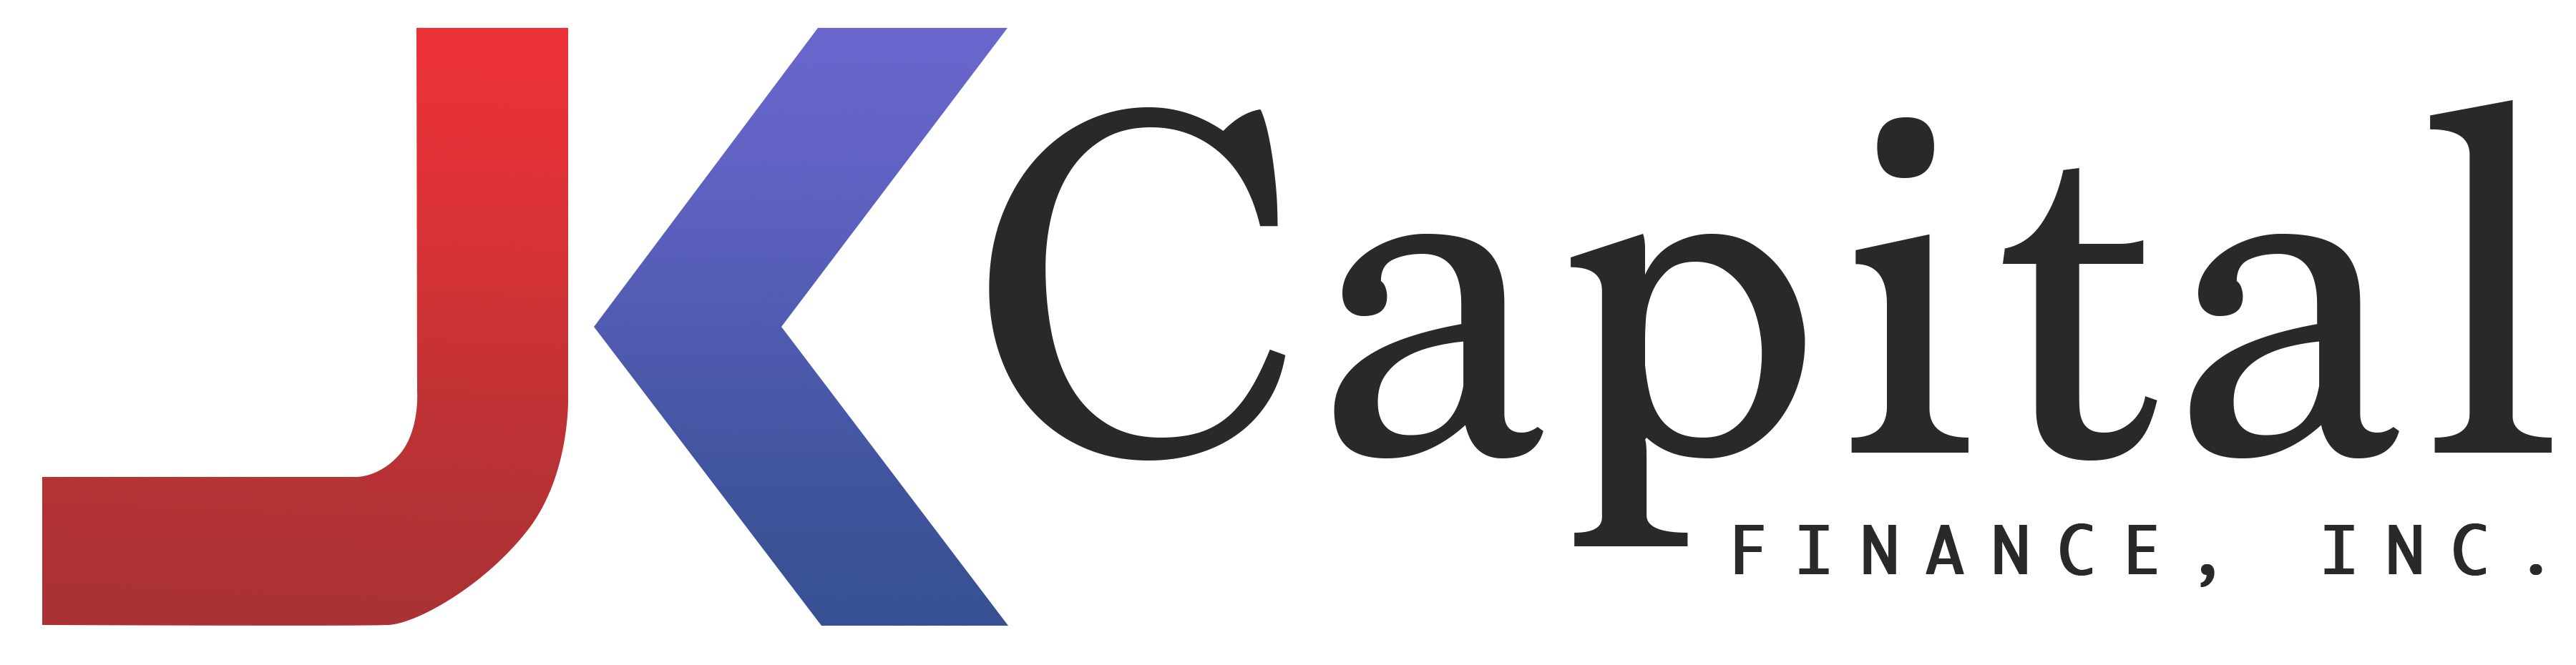 JK Capital Finance, Inc.